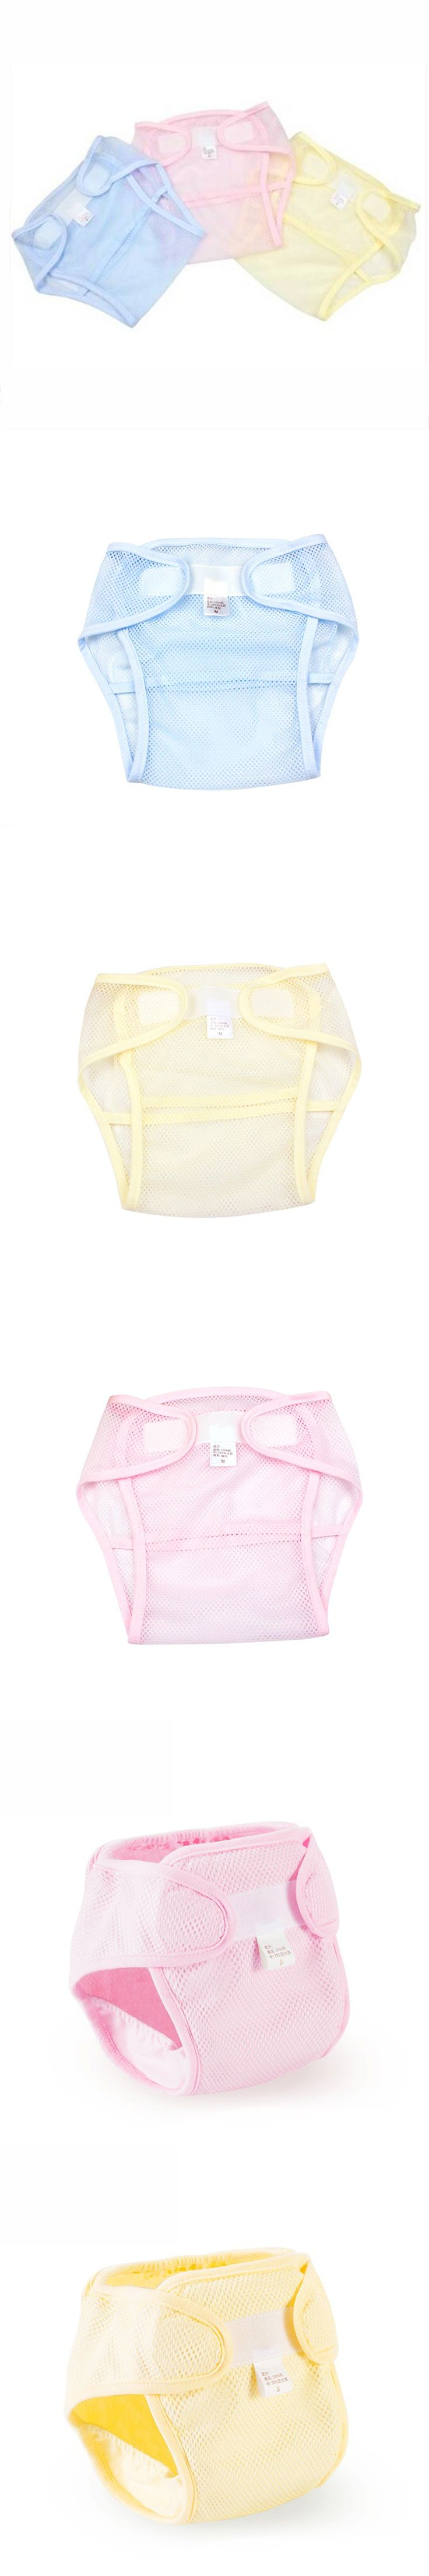 Baby Disposable Diapers Double Gusset Potty Training Pants Baby Care Stoffwindel Elfdiaper Cloth Night Baby Nappies 50O004 $15.66